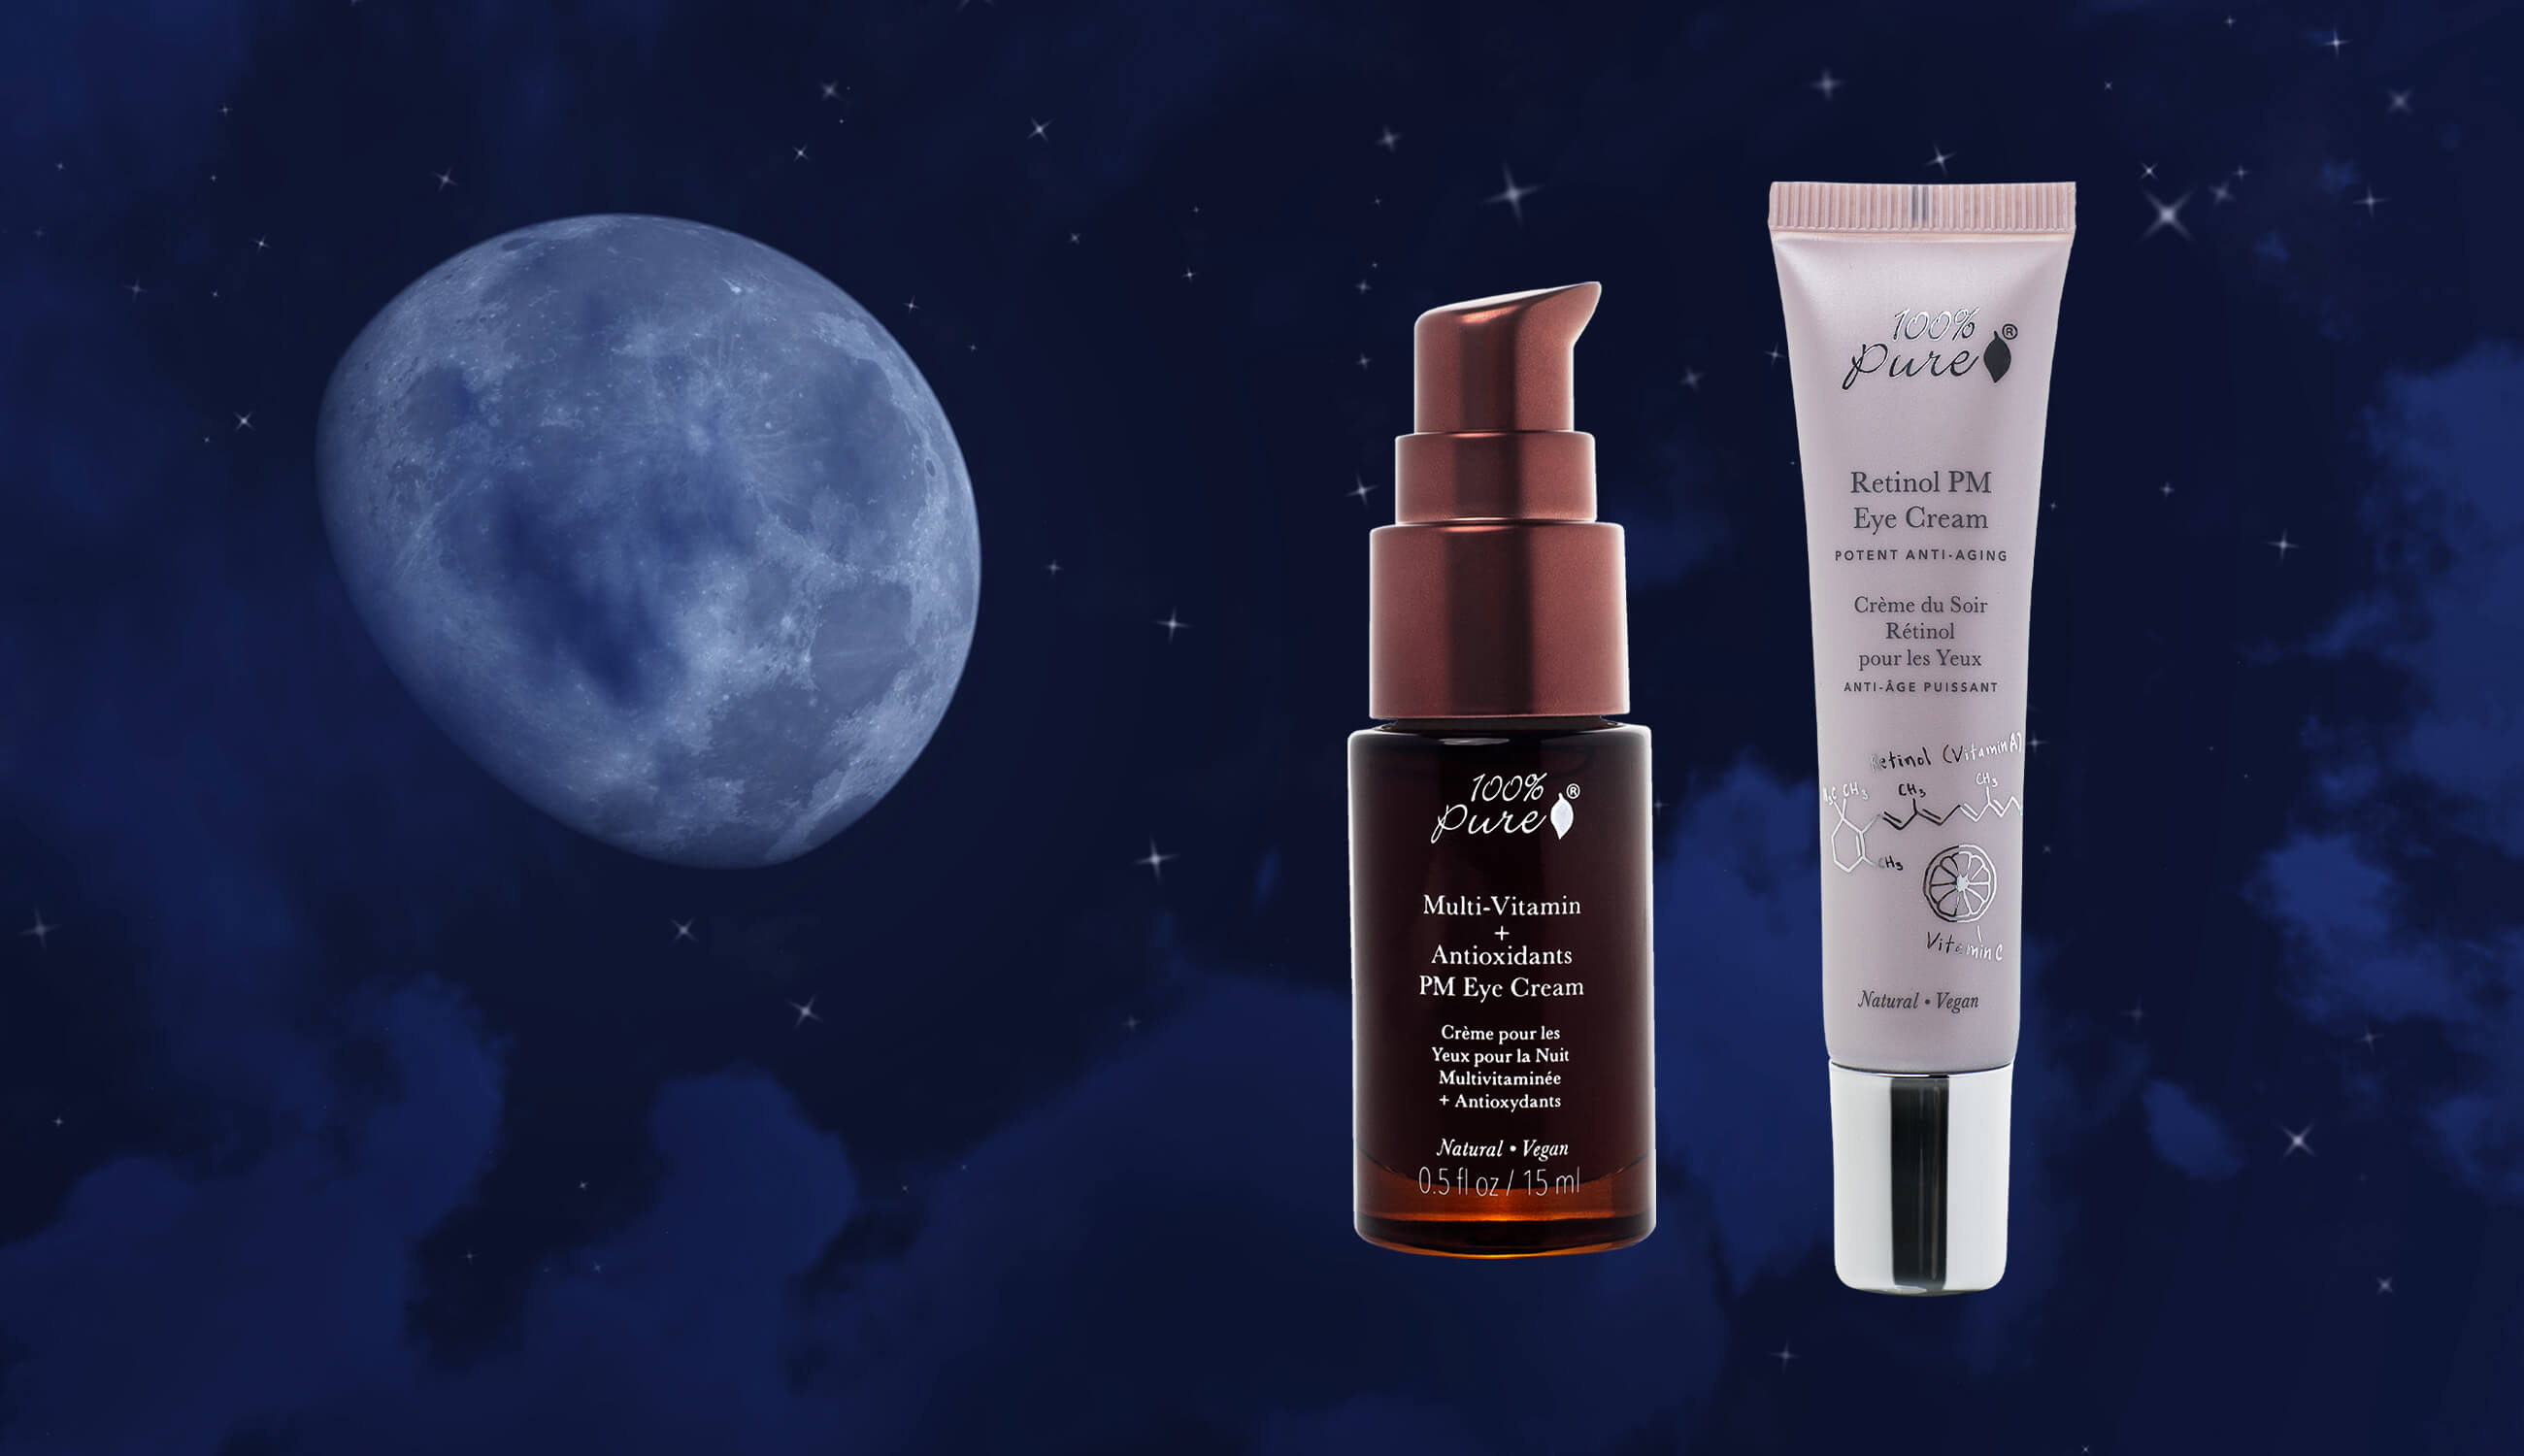 Night products